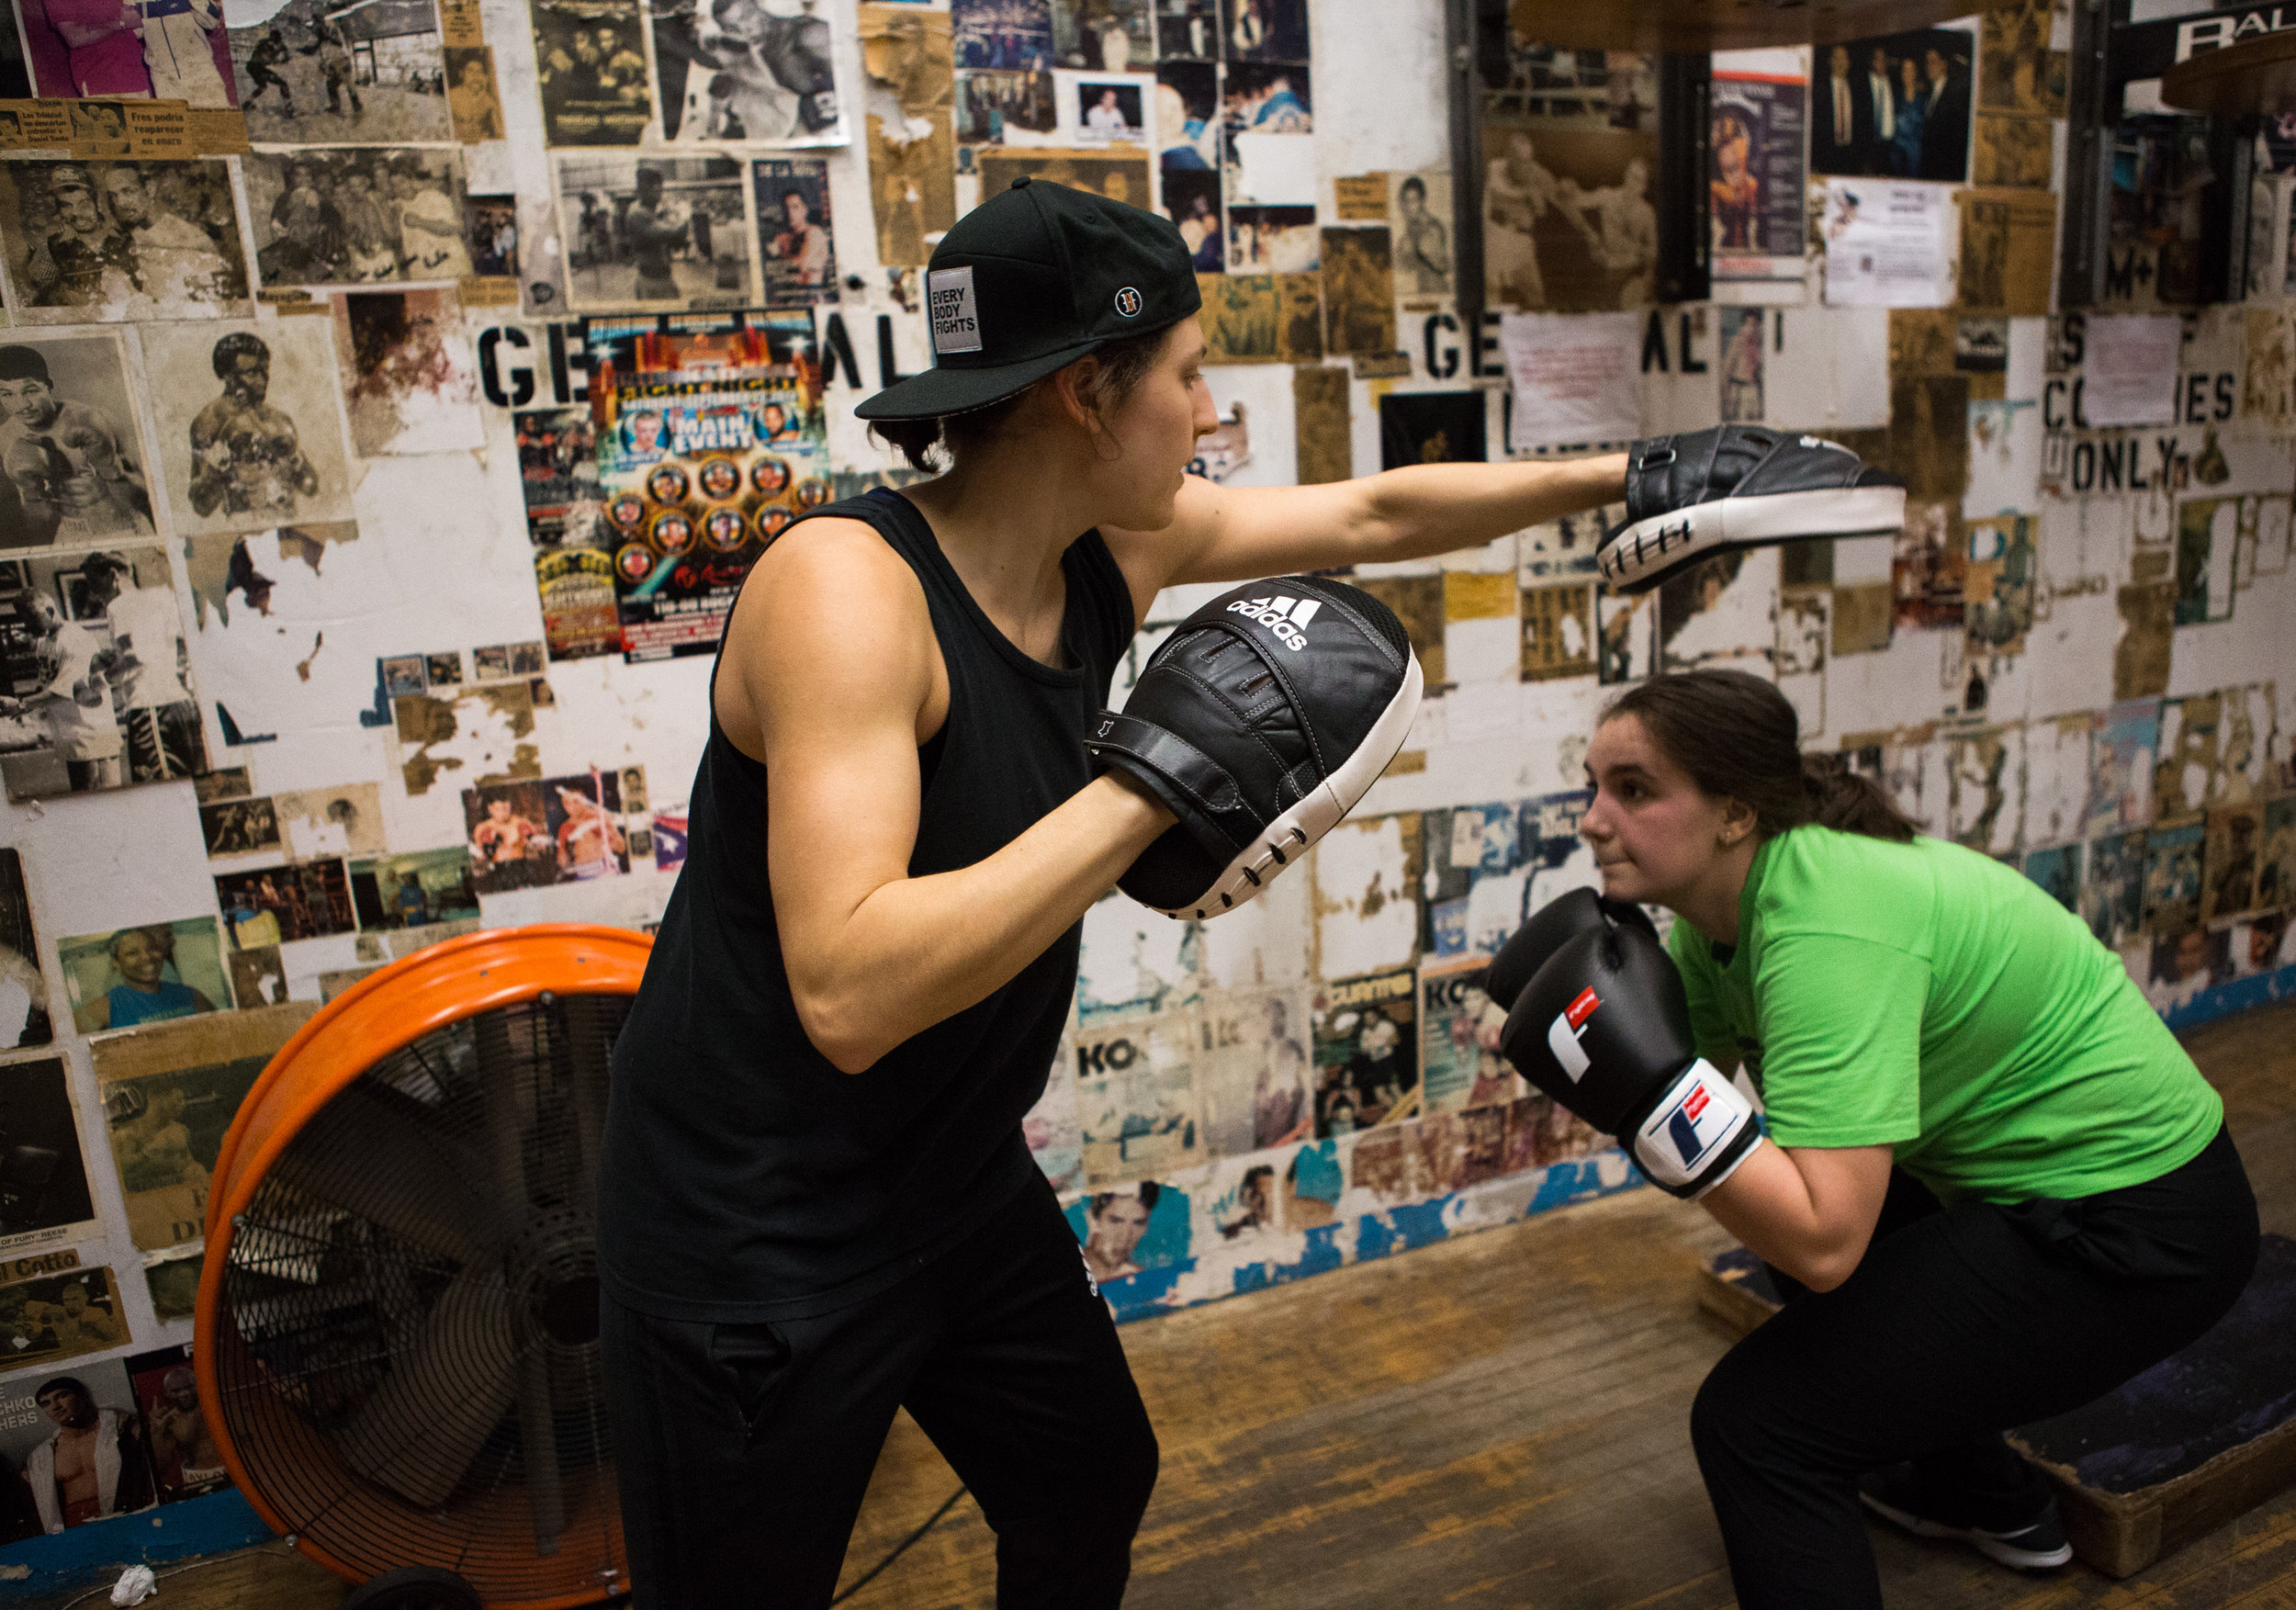 """Boxing has made me more confident. All the stress from school is gone and it's just me and the punching bag.""  – Xhesika, 17"